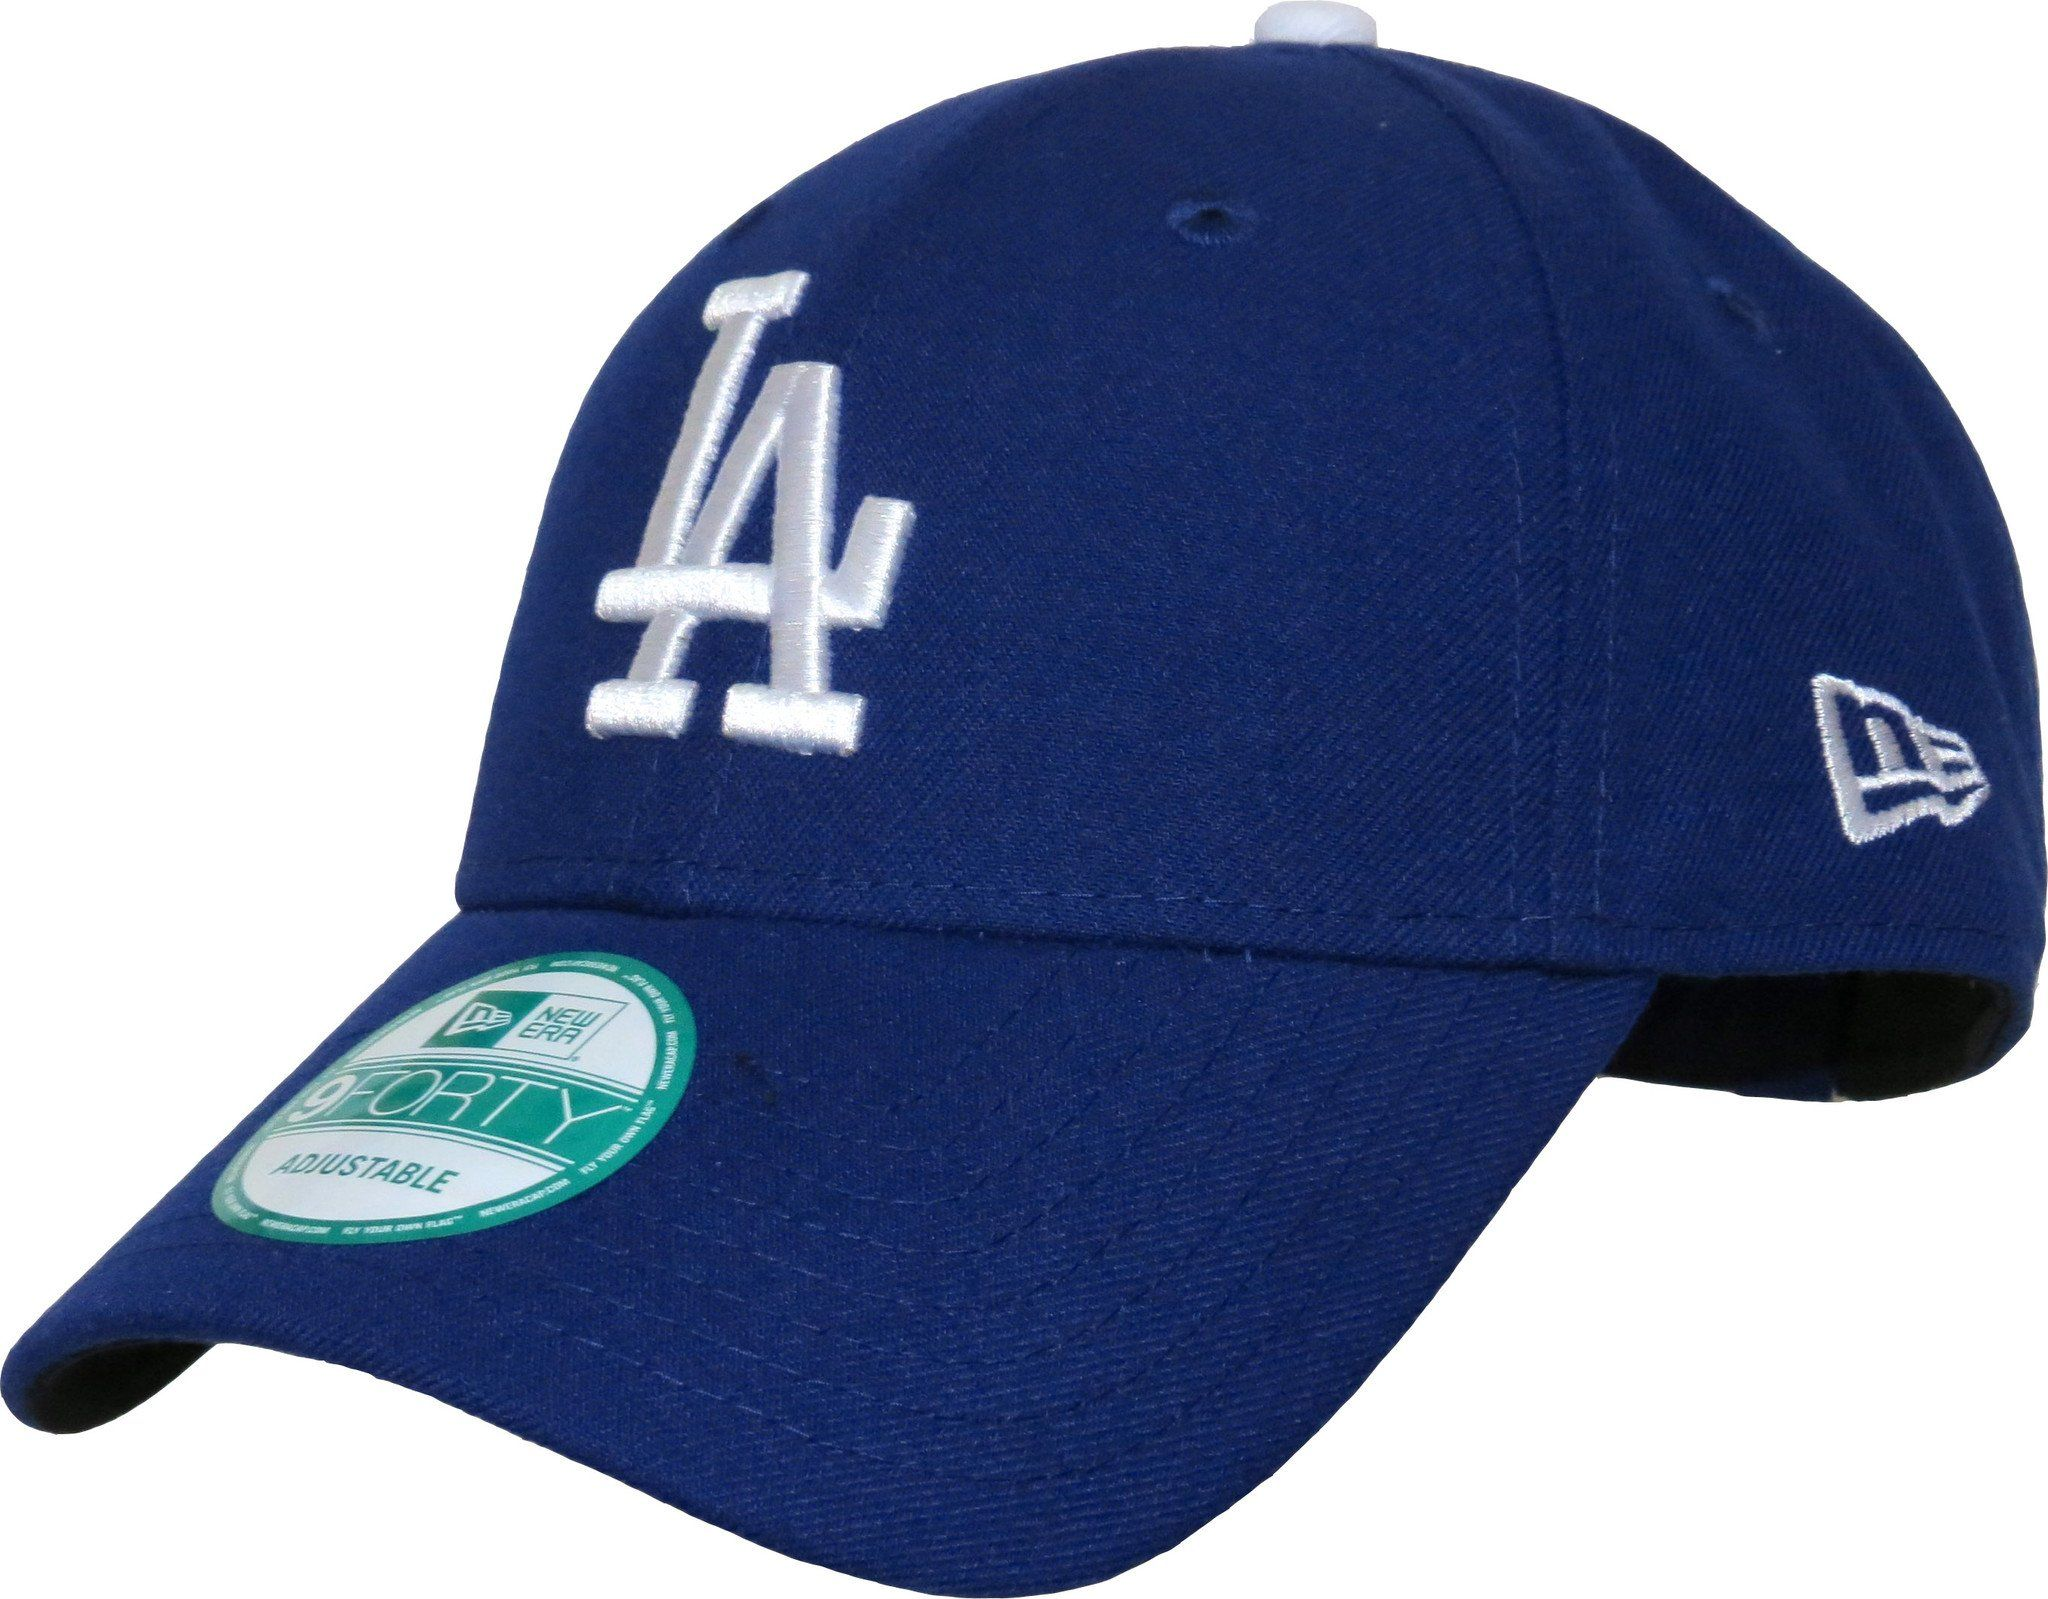 68a72da28f5 New Era 9Forty Los Angeles Dodgers The League Adjustable Baseball Cap. Blue  with the LA front logo